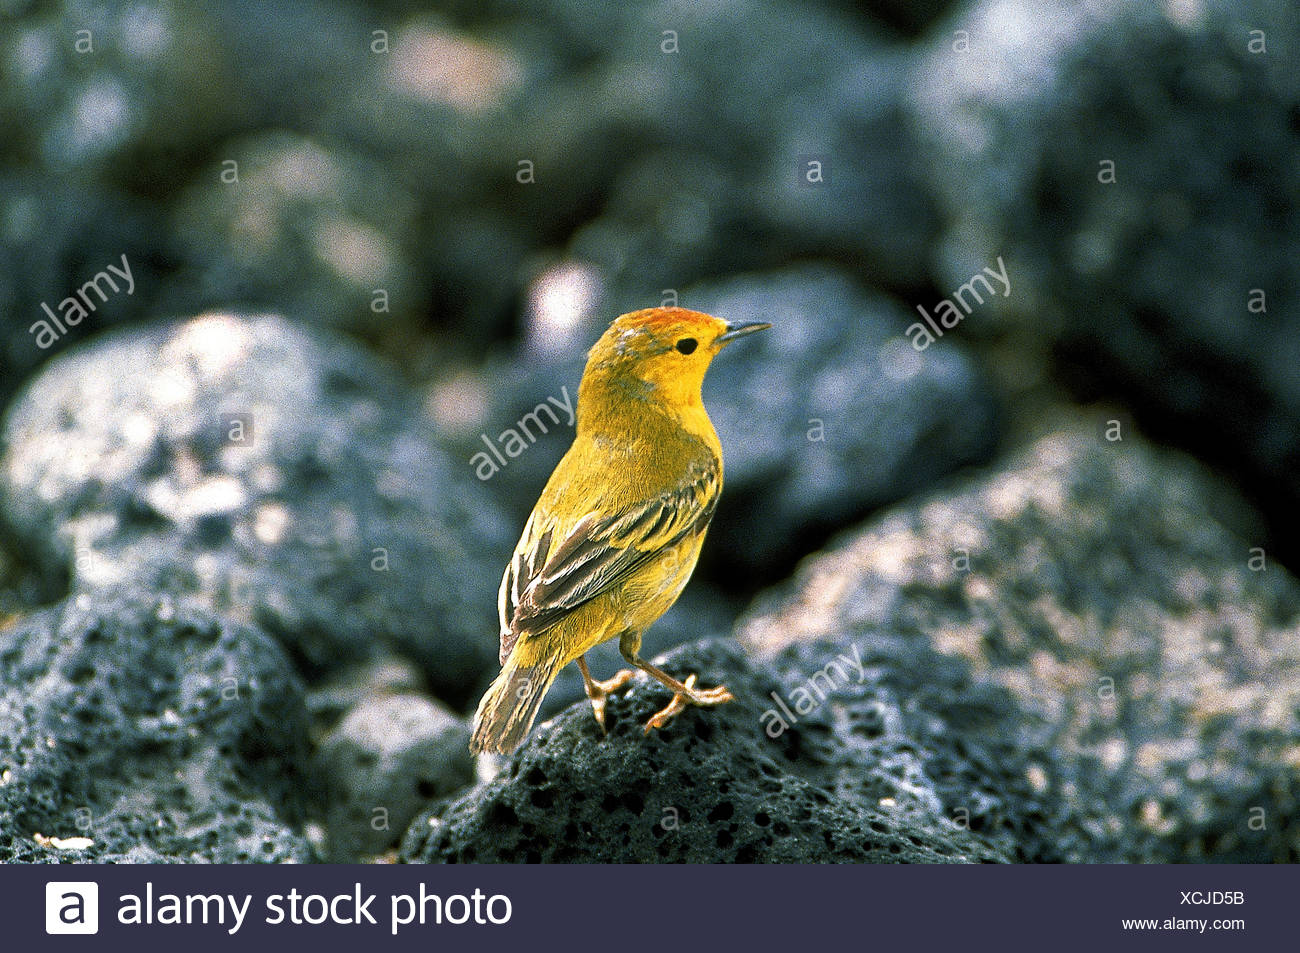 Yellow Warbler, dendroica petechia, Adult on Stone, Galapagos - Stock Image